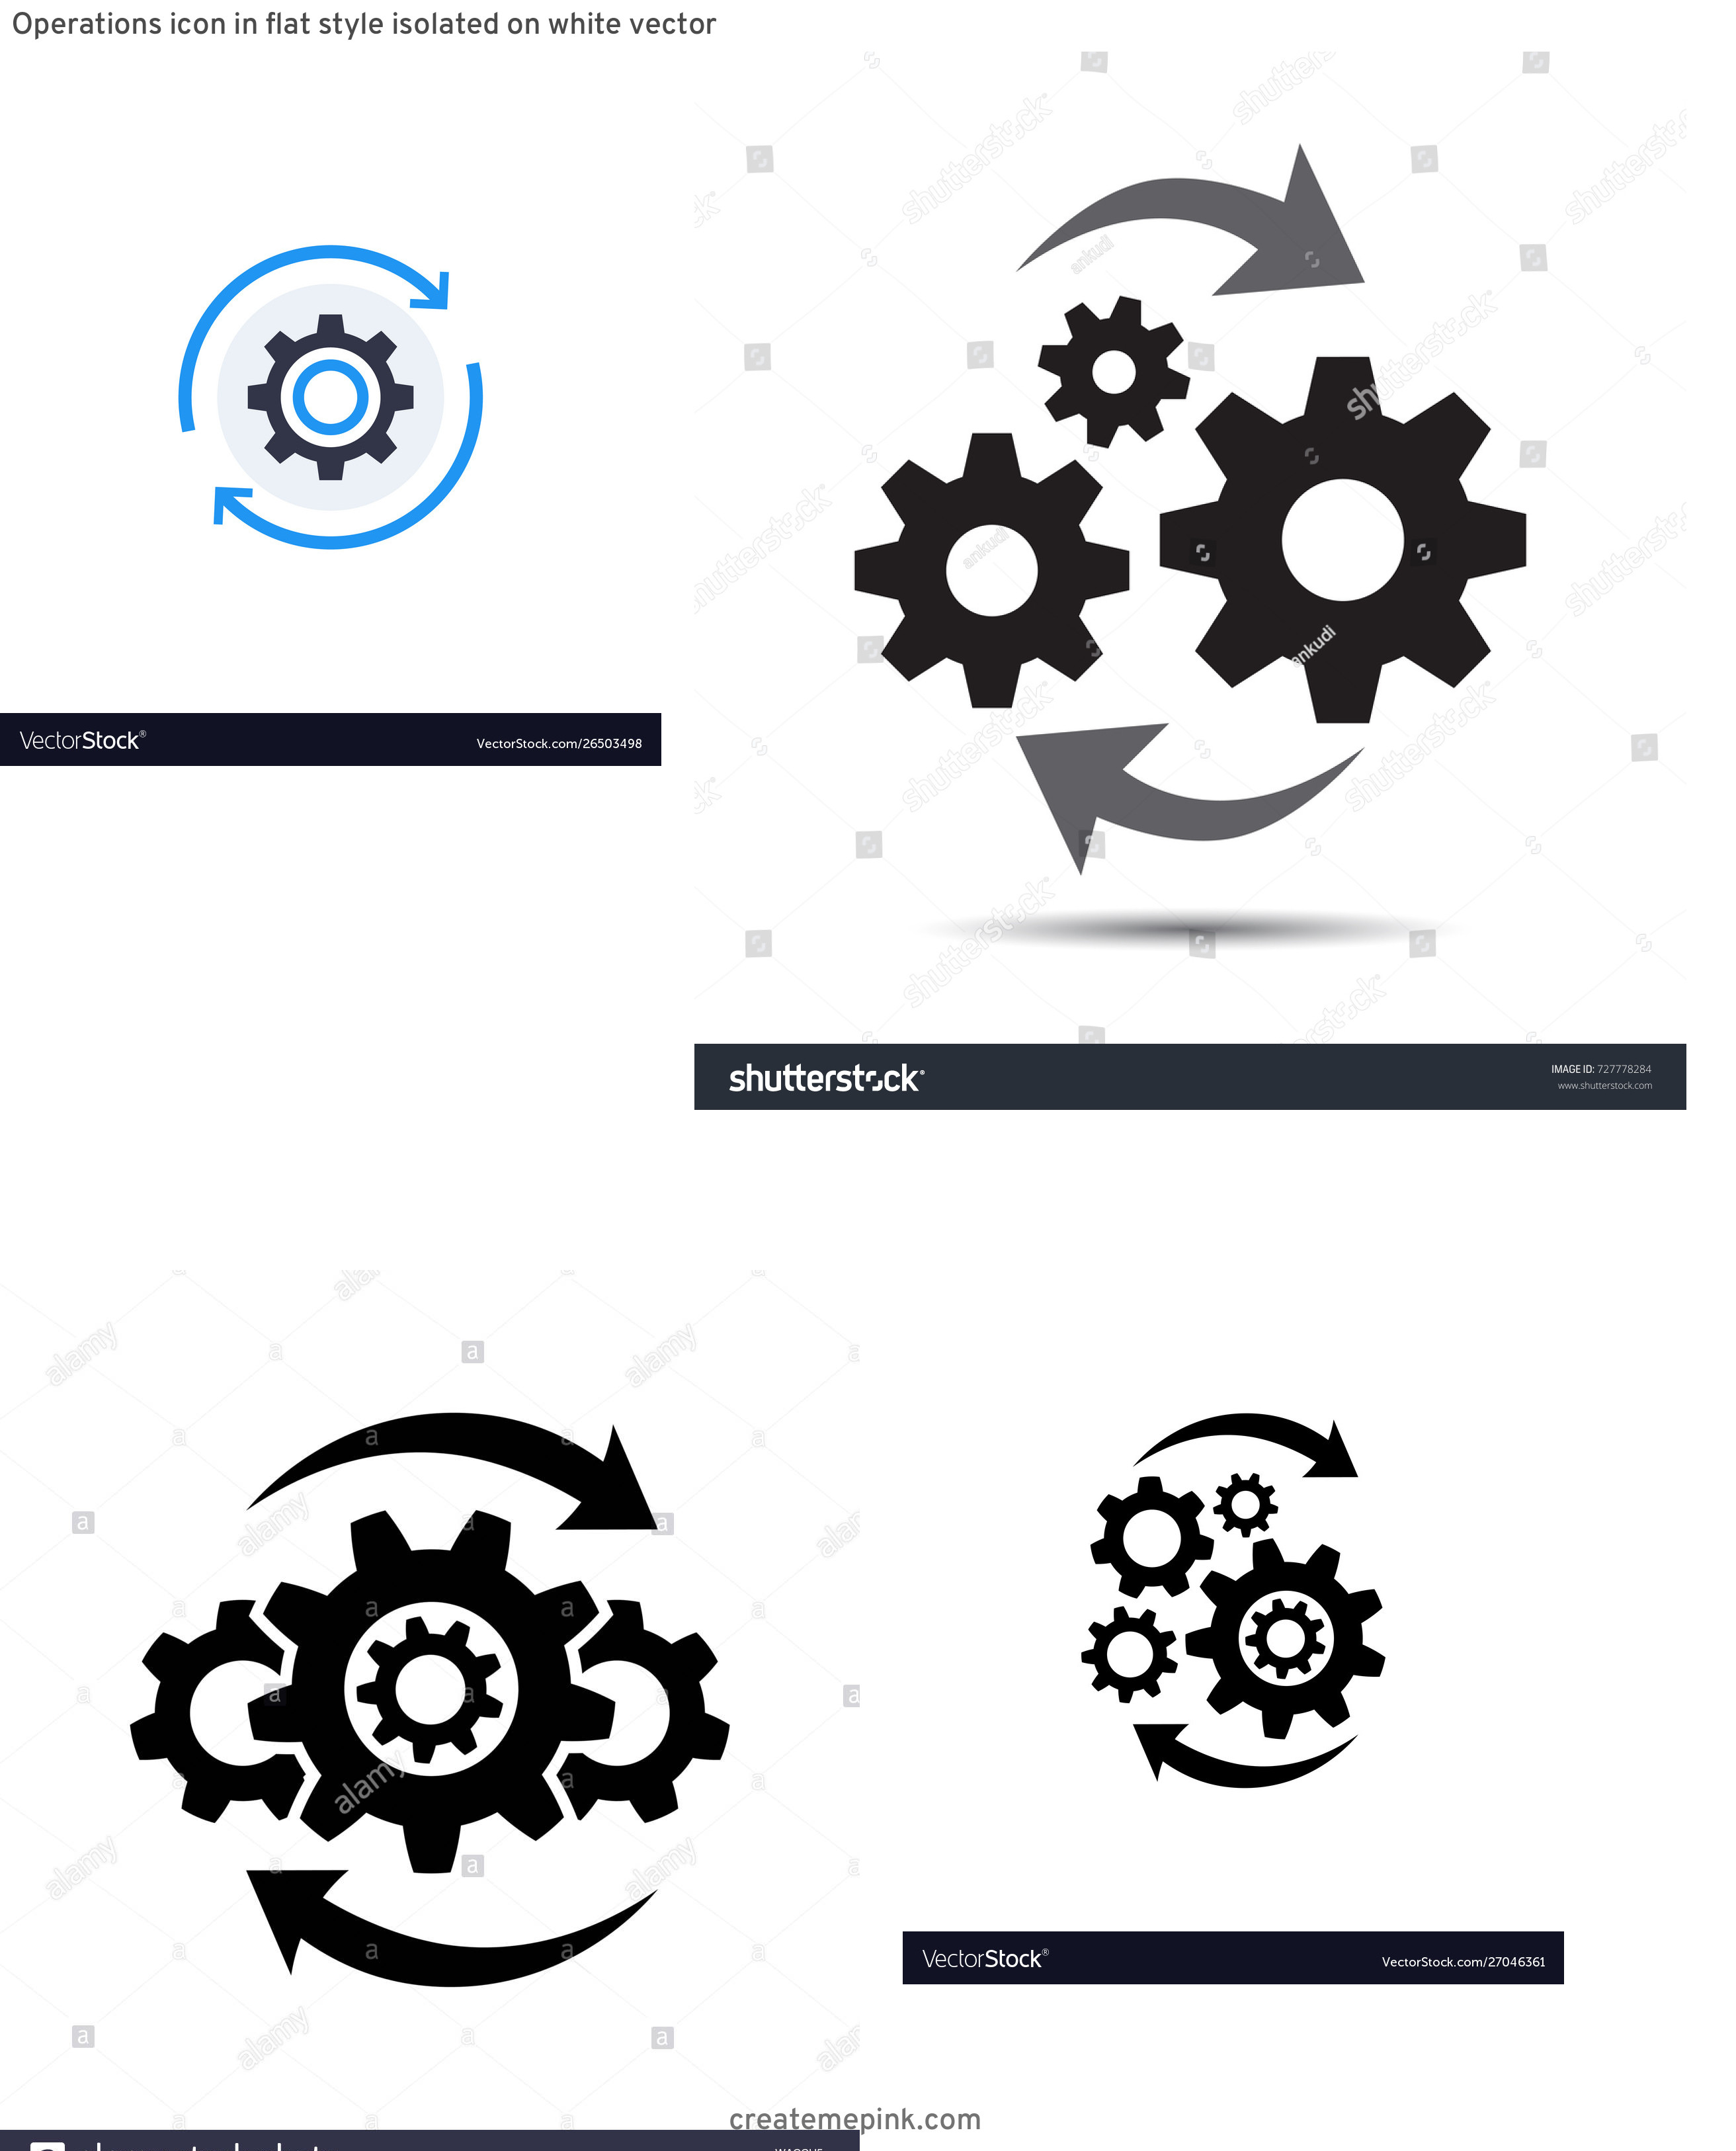 Operations Icon Vector: Operations Icon In Flat Style Isolated On White Vector